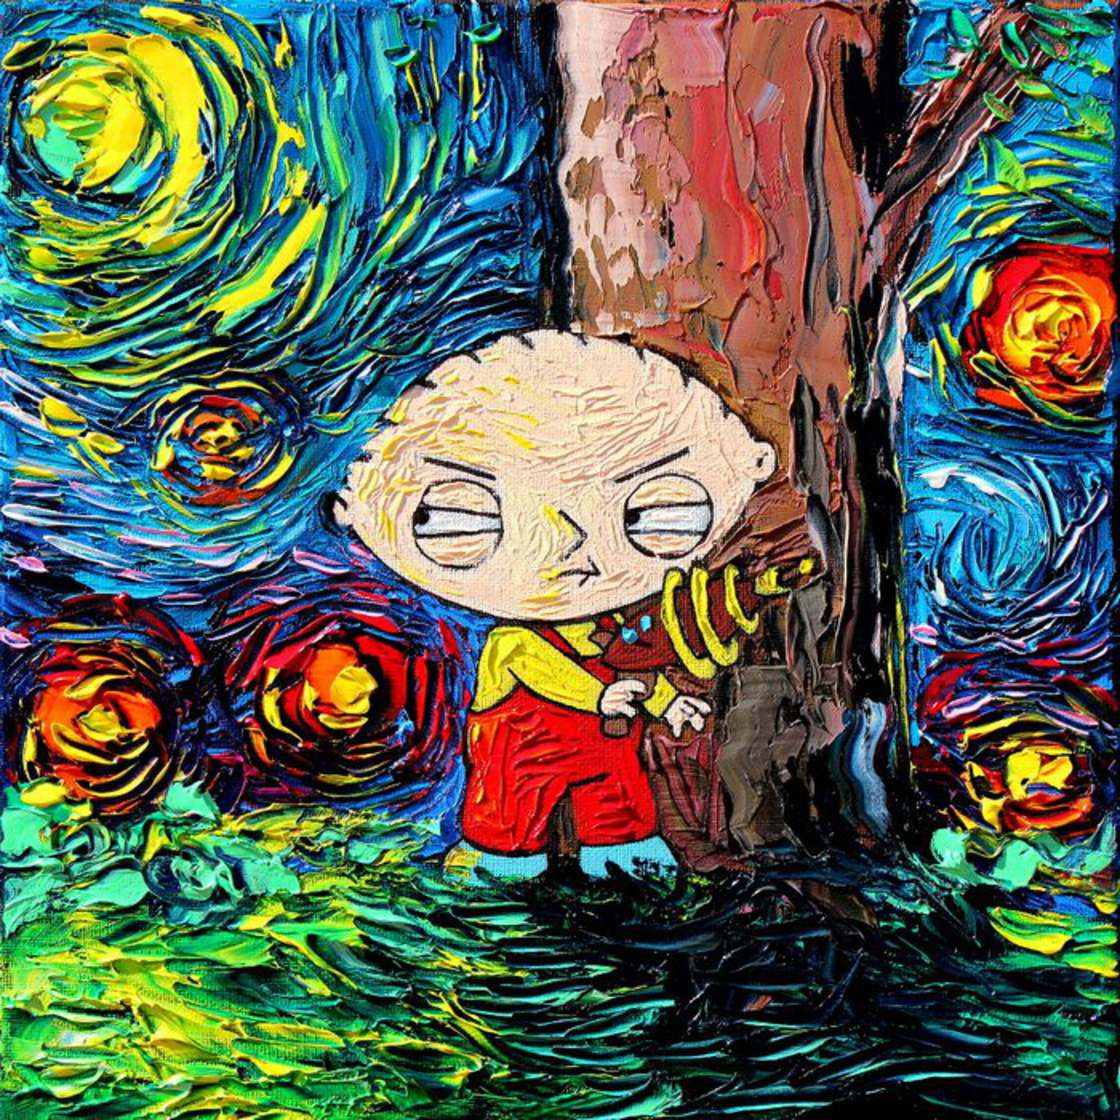 Starry Night - Quand Van Gogh rencontre la Pop Culture